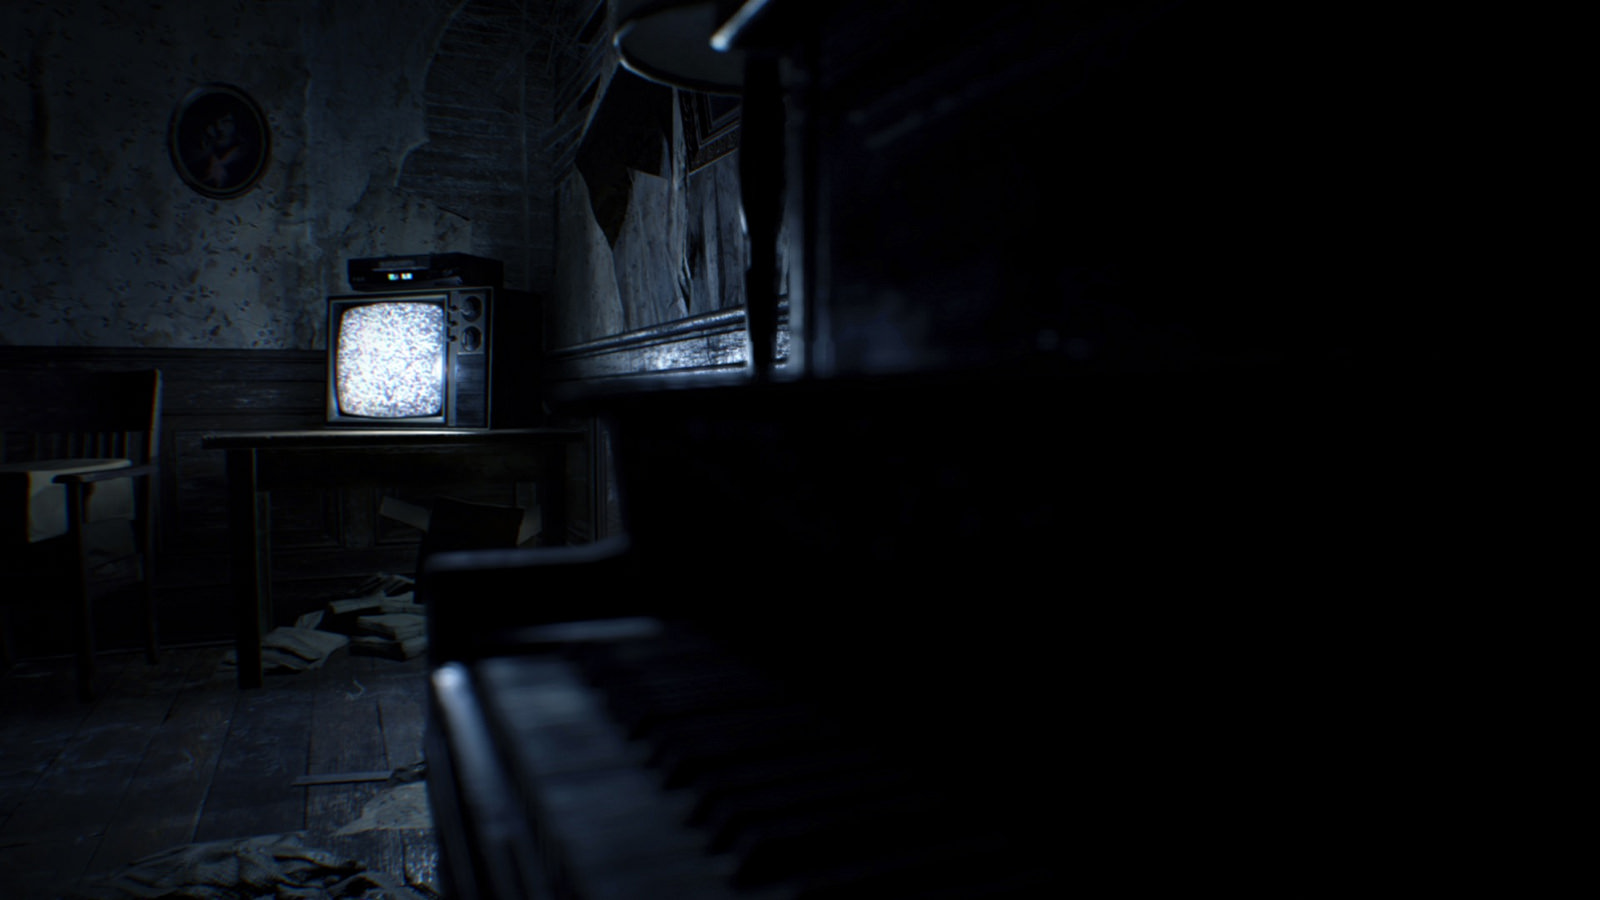 resident evil 7 will allow cross saves between xbox one and pc